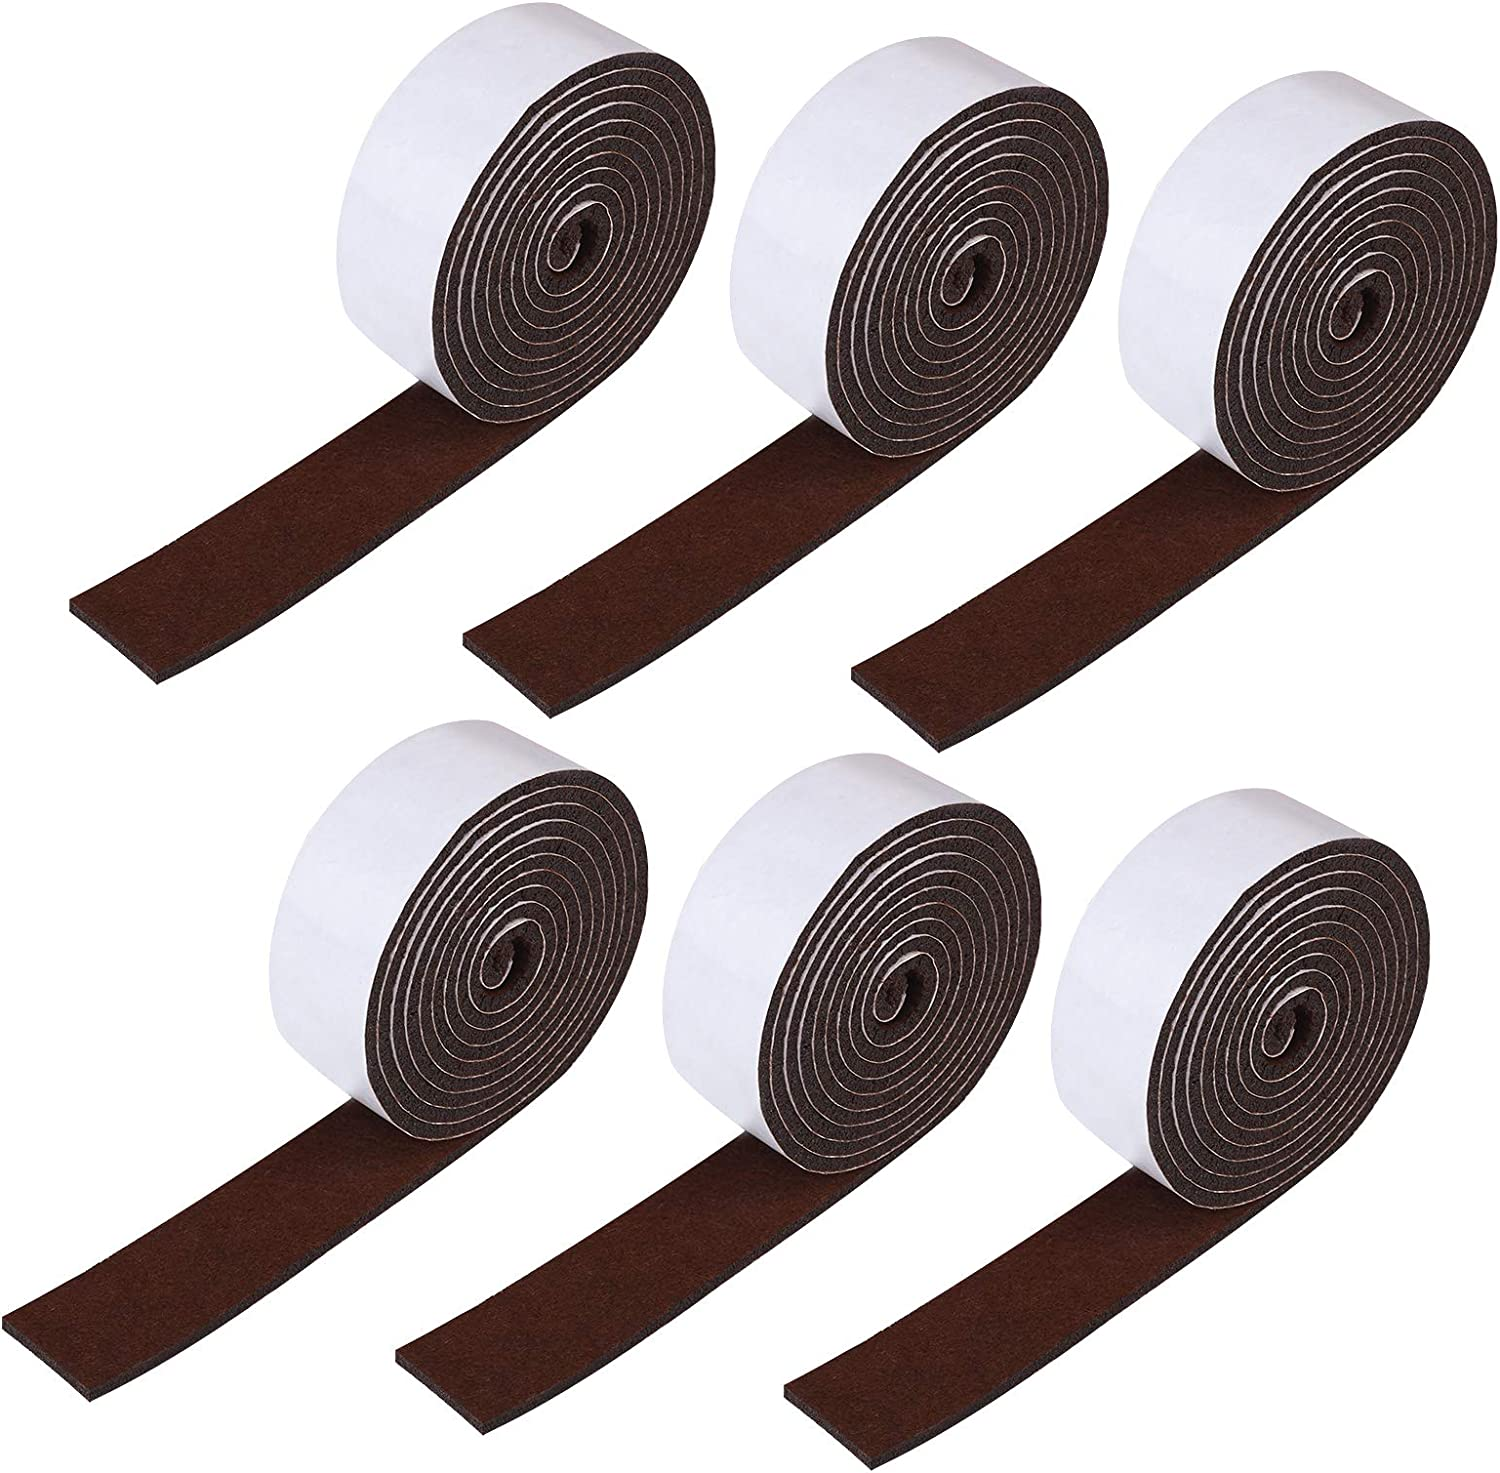 Aneco 6 Pack 1 x 60 Inch Self Adhesive Felt Tape Self-Stick Heavy Duty Felt Strips Felt Adhesive Strip Roll Polyester Felt Tape for Furniture and Hard Surfaces (Brown)